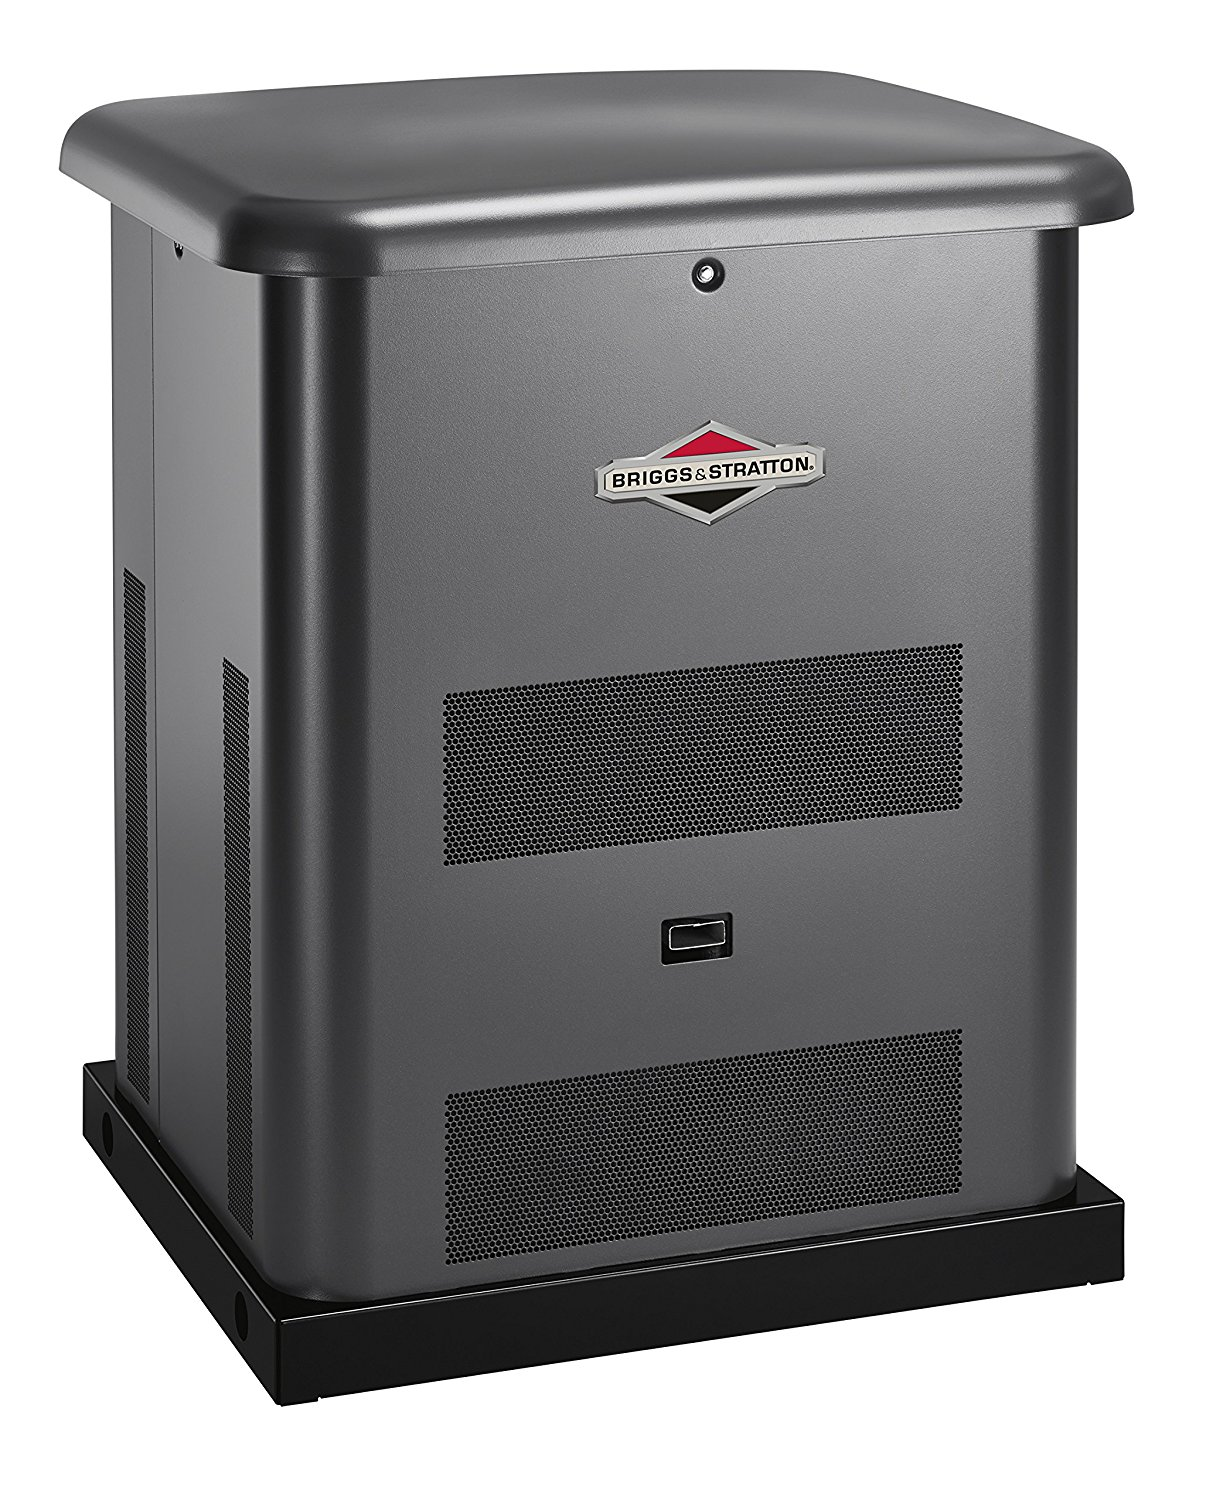 hight resolution of briggs stratton 40445 8000 watt home standby generator system